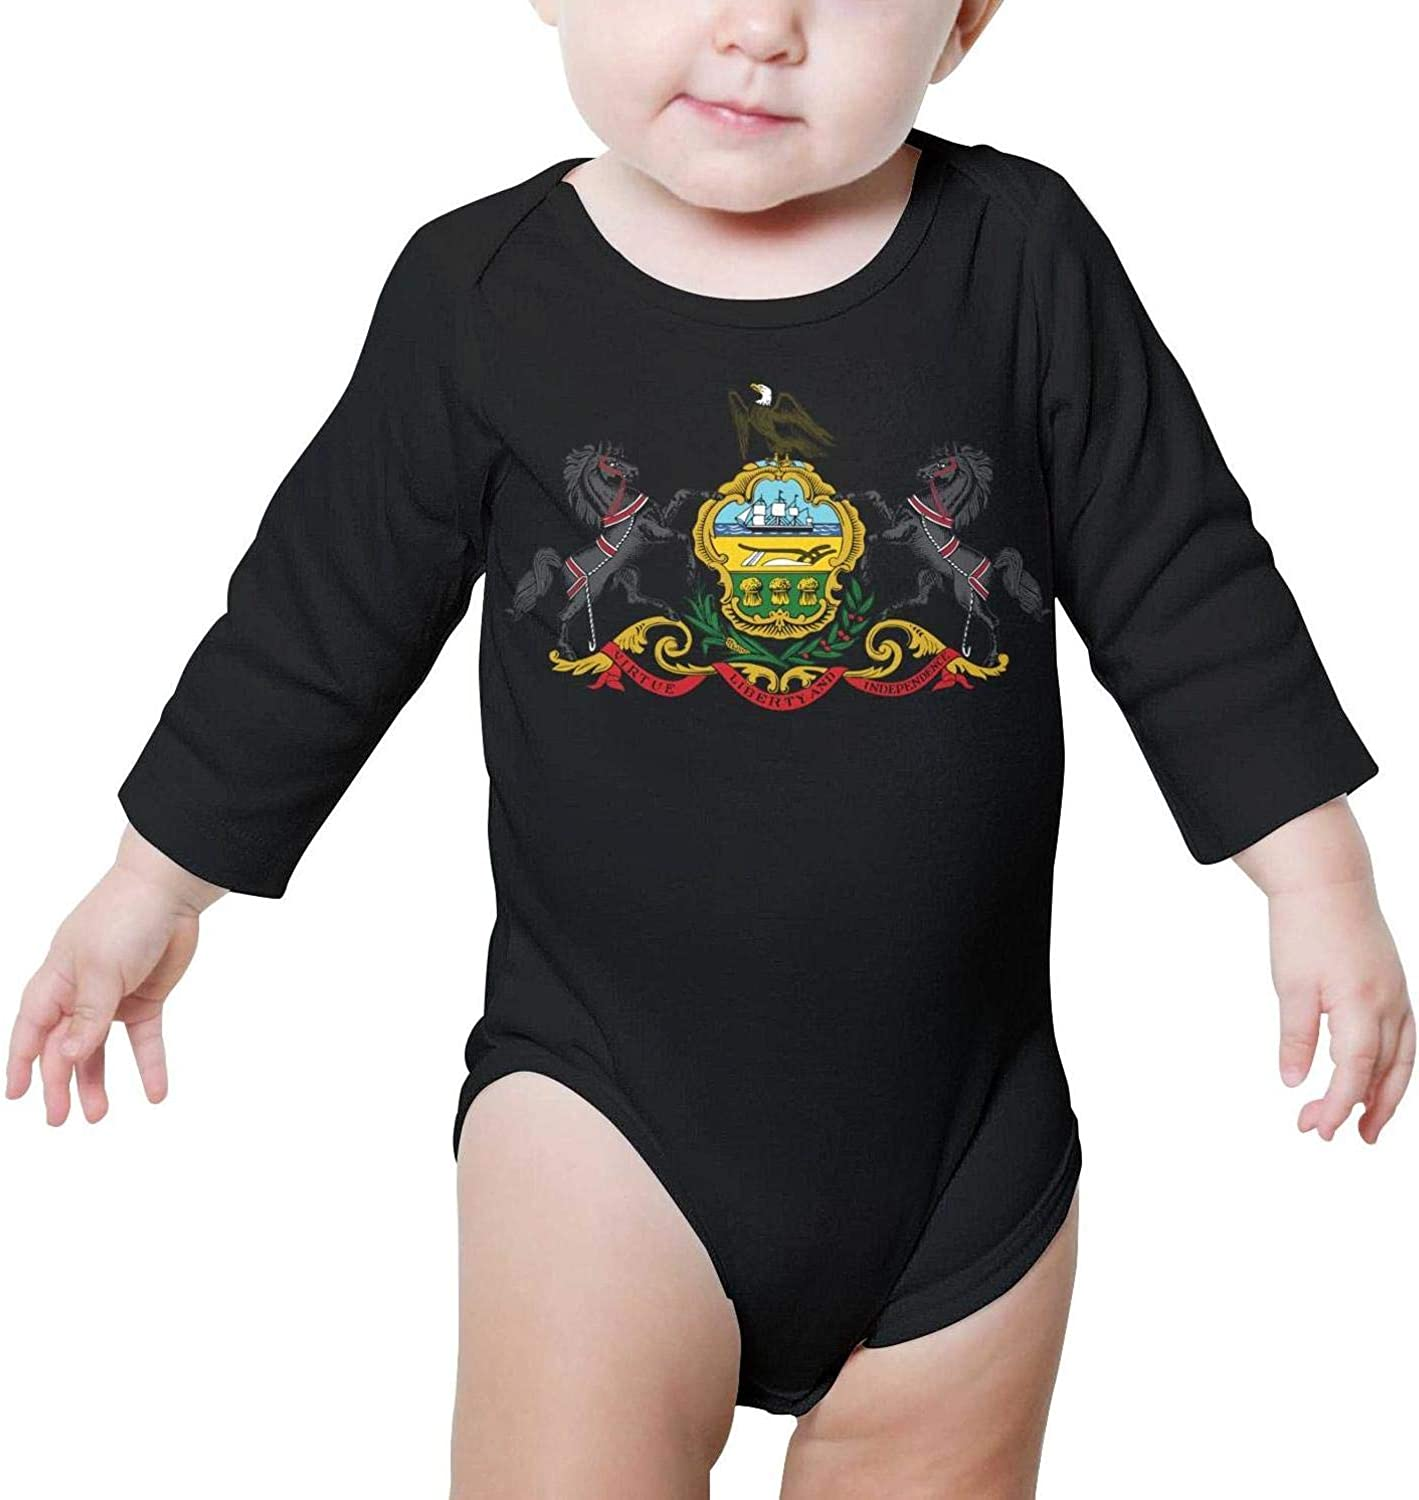 PoPBelle Connecticut American Robin Baby Onesie Outfits Long Sleeve Jumpsuits Cotton Unisex